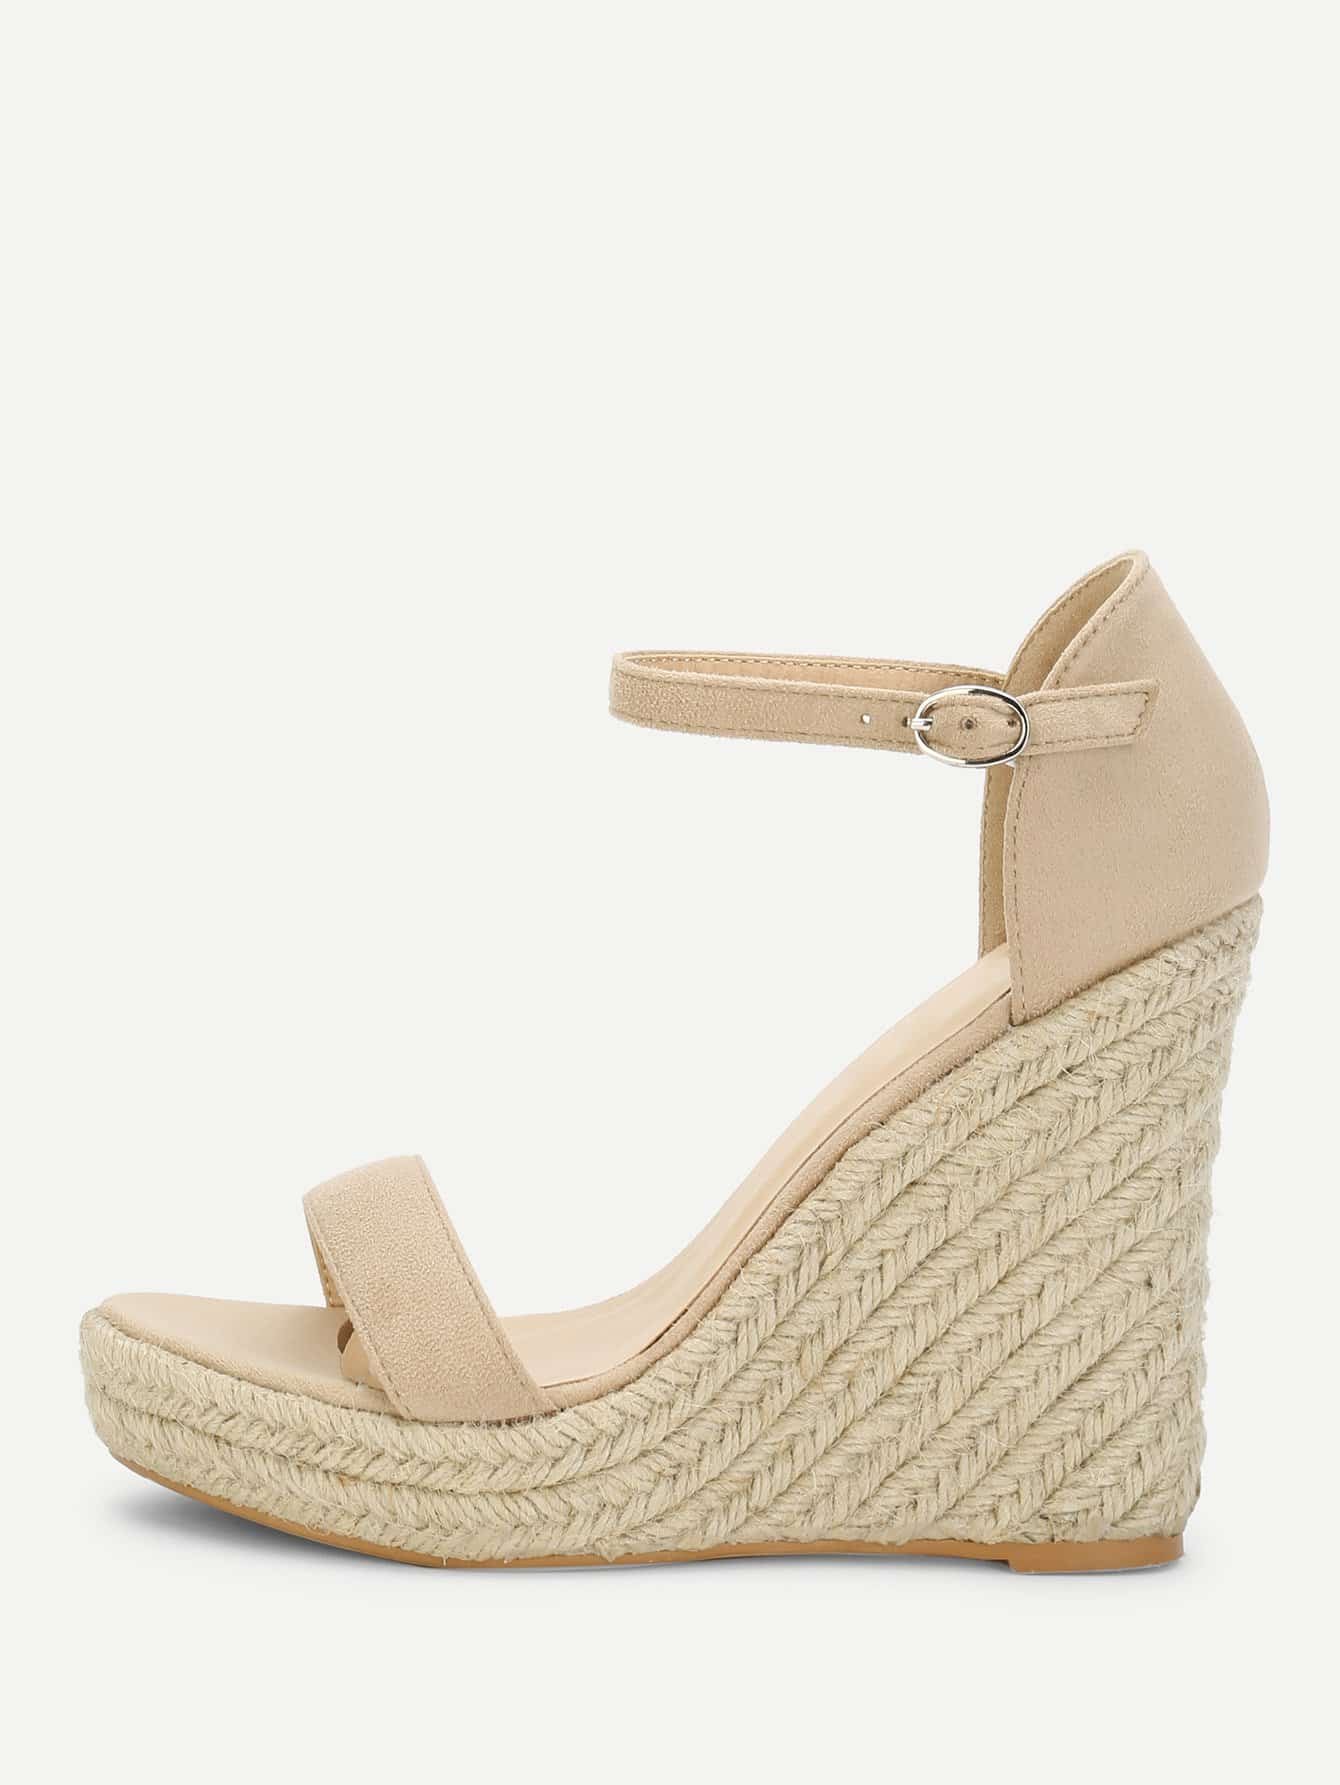 7b2f79bcd2d Two Part Espadrille Wedge Sandals